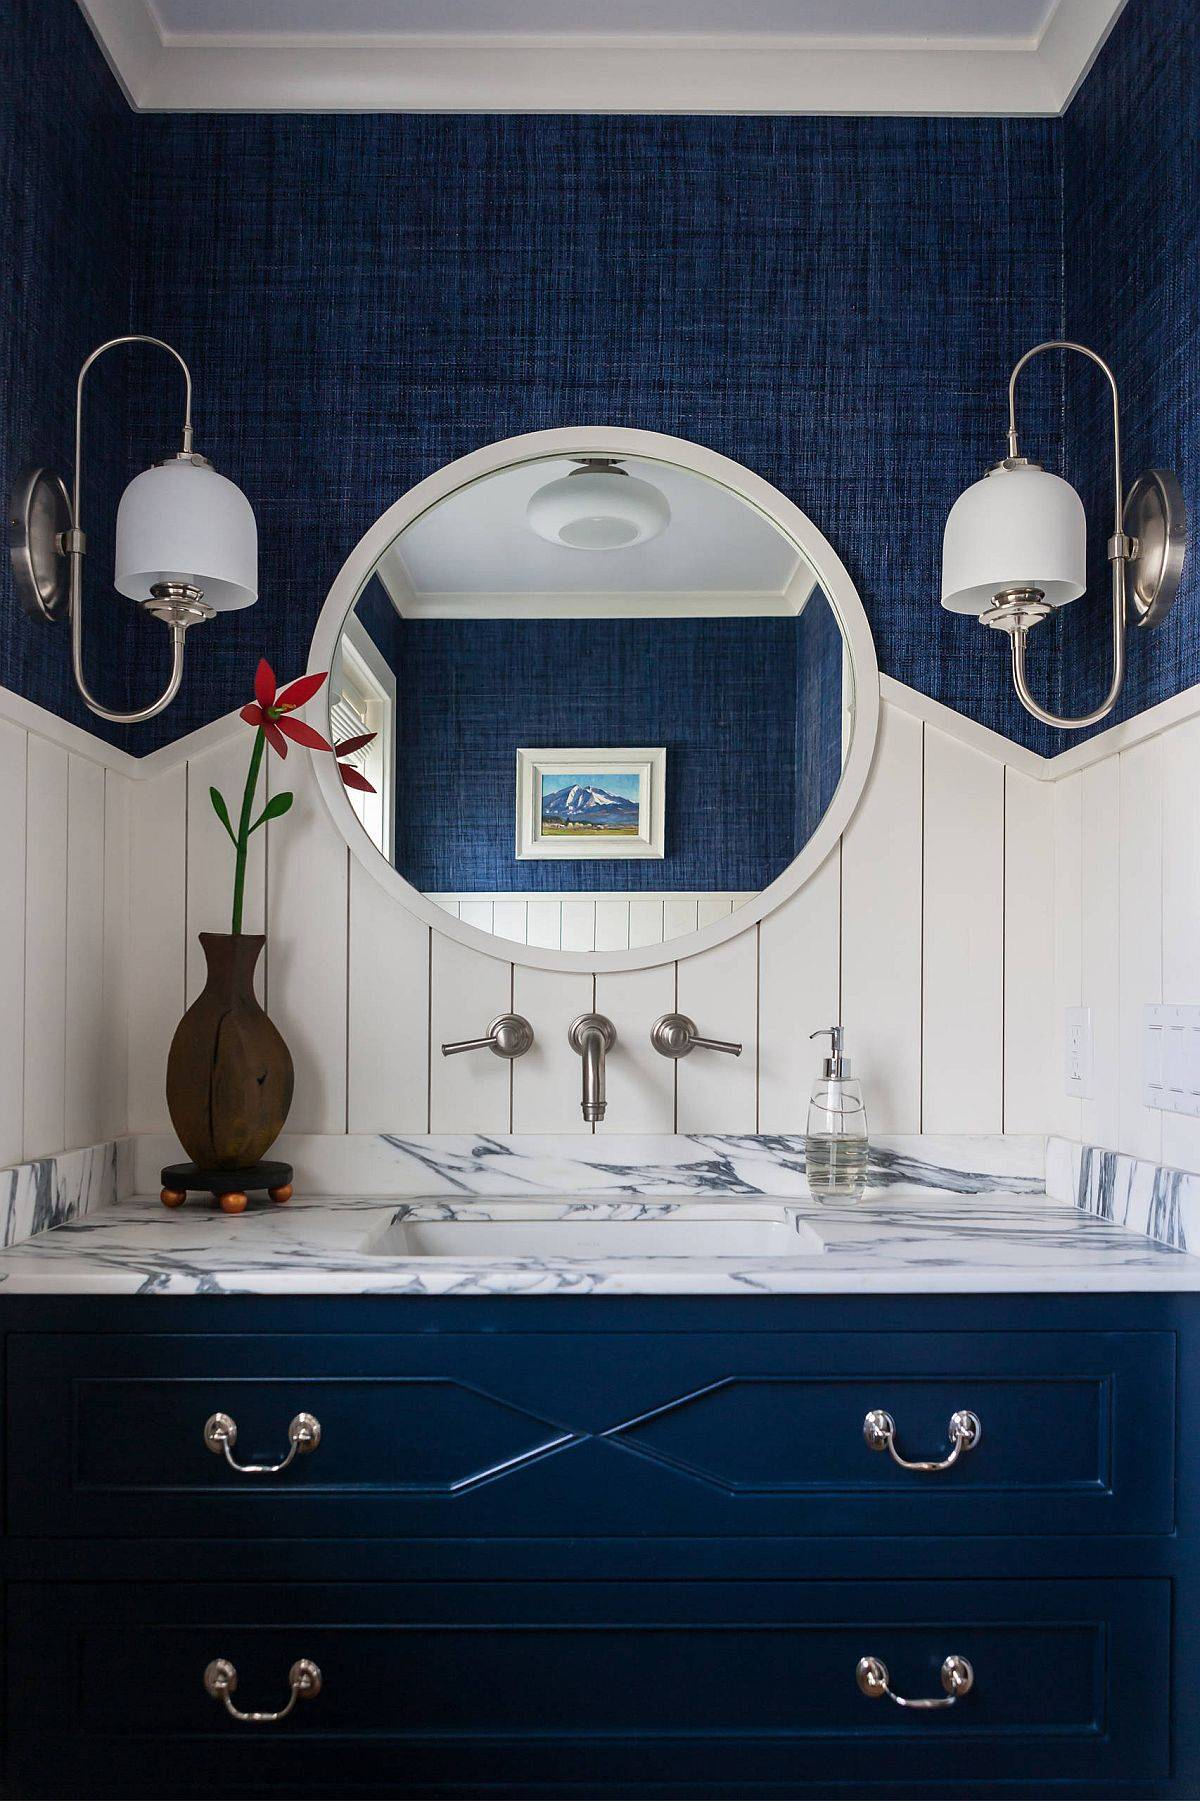 Beach-style-powder-room-in-blue-and-white-with-marble-countertop-and-plenty-of-textural-contrast-58436